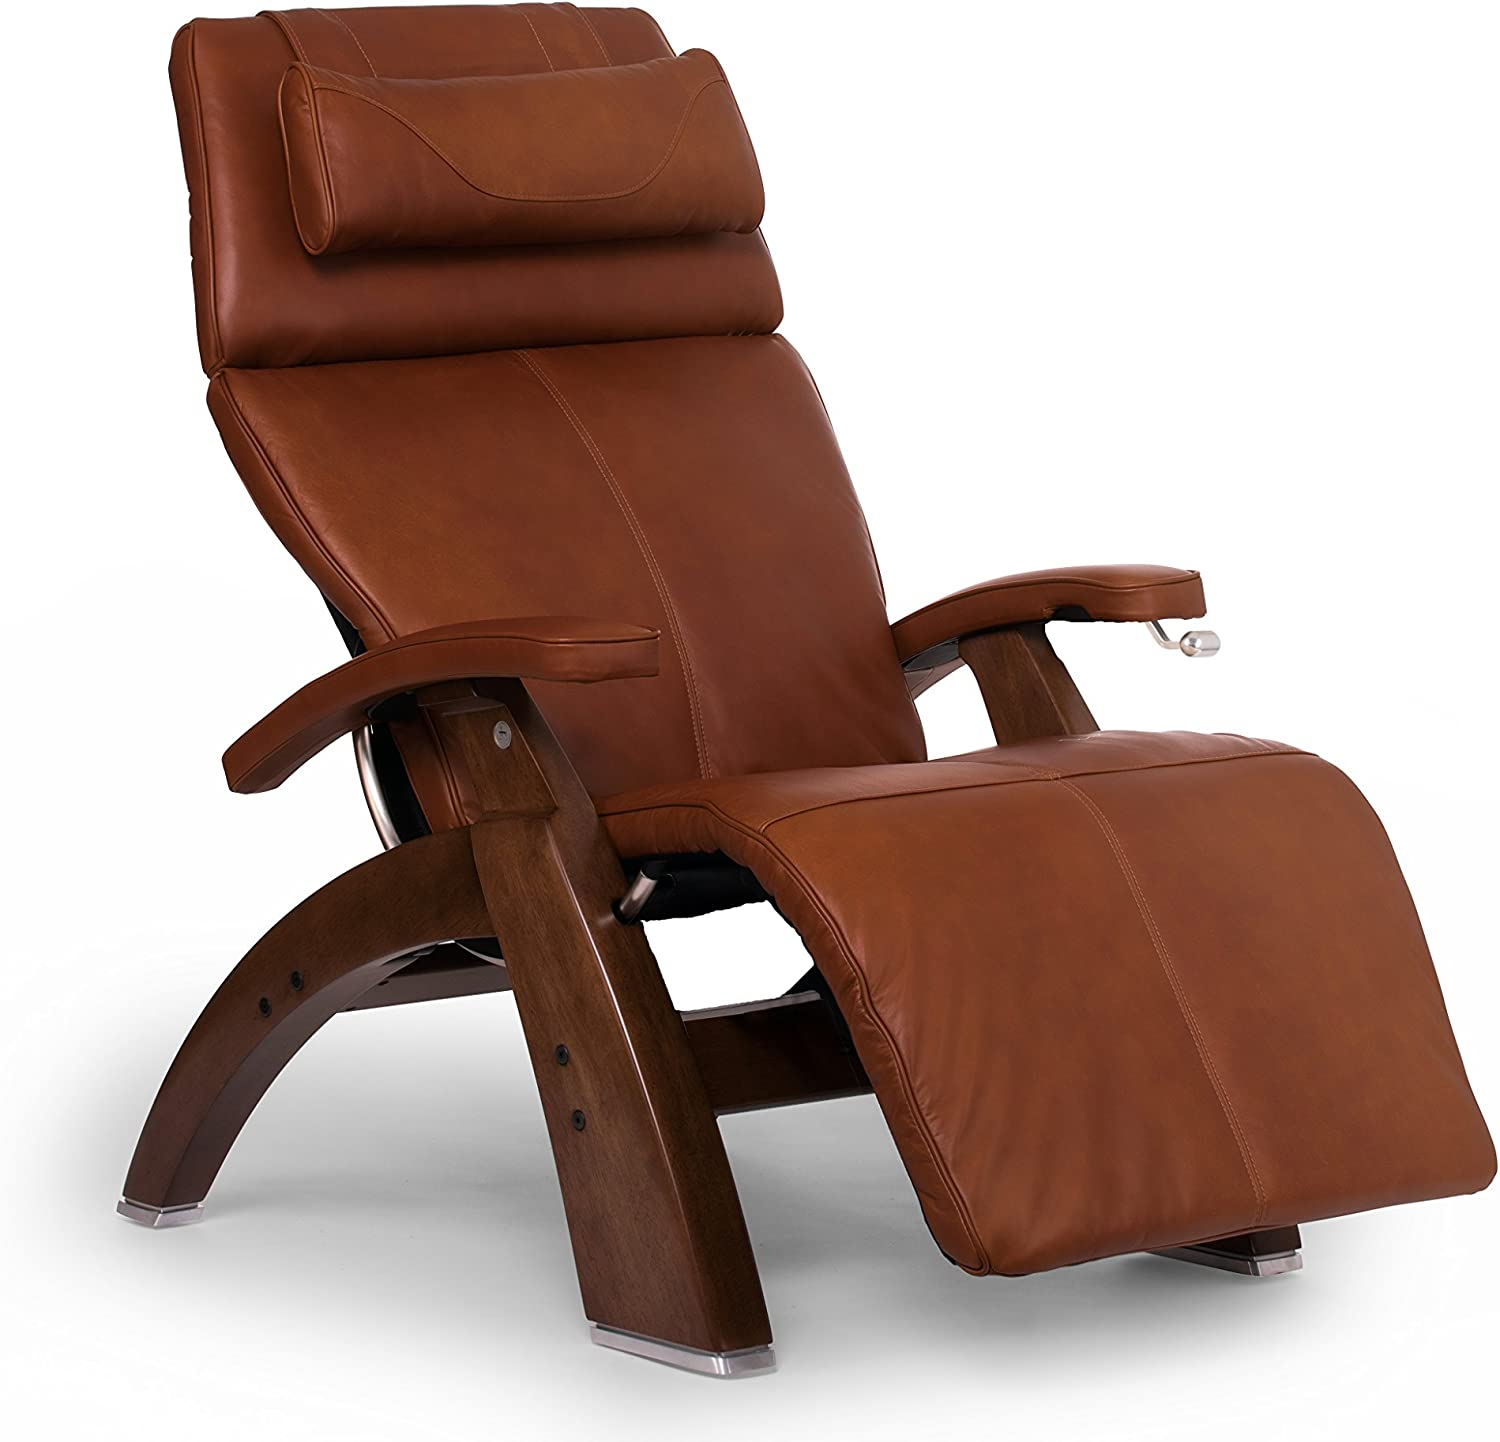 Human Touch Perfect Chair PC-420 Classic Plus Premium Full Grain Leather Zero Gravity Recliner, Cognac